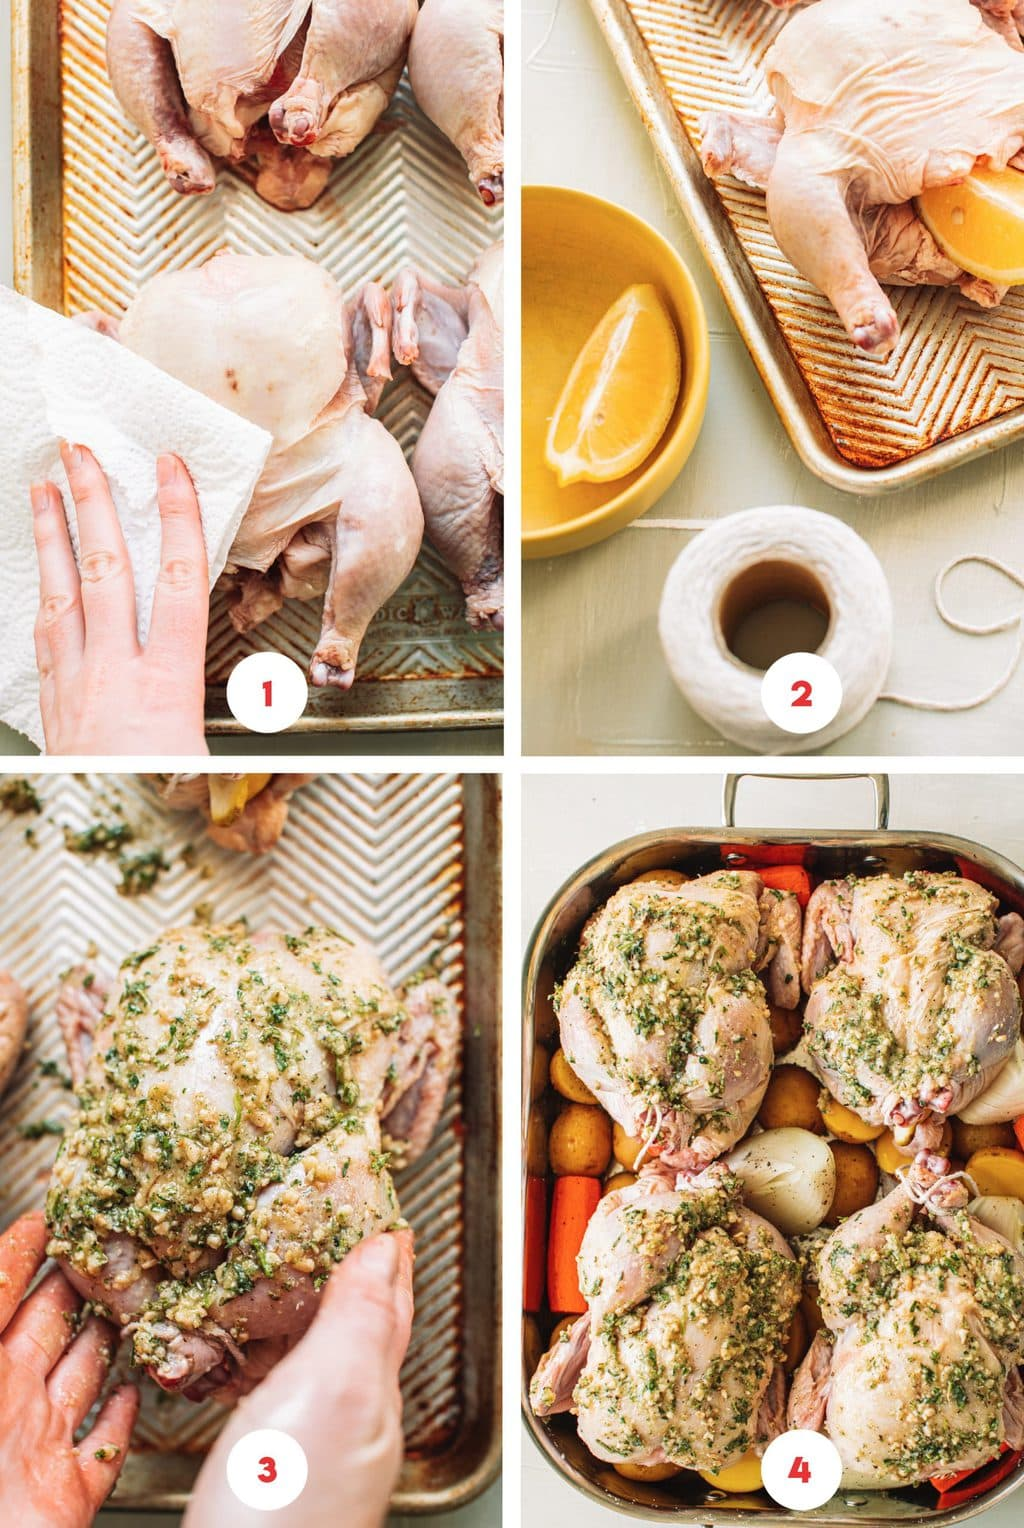 Step-by-step, 4x4 image showing how to dry Cornish hens and coat with herb and butter mixture before baking